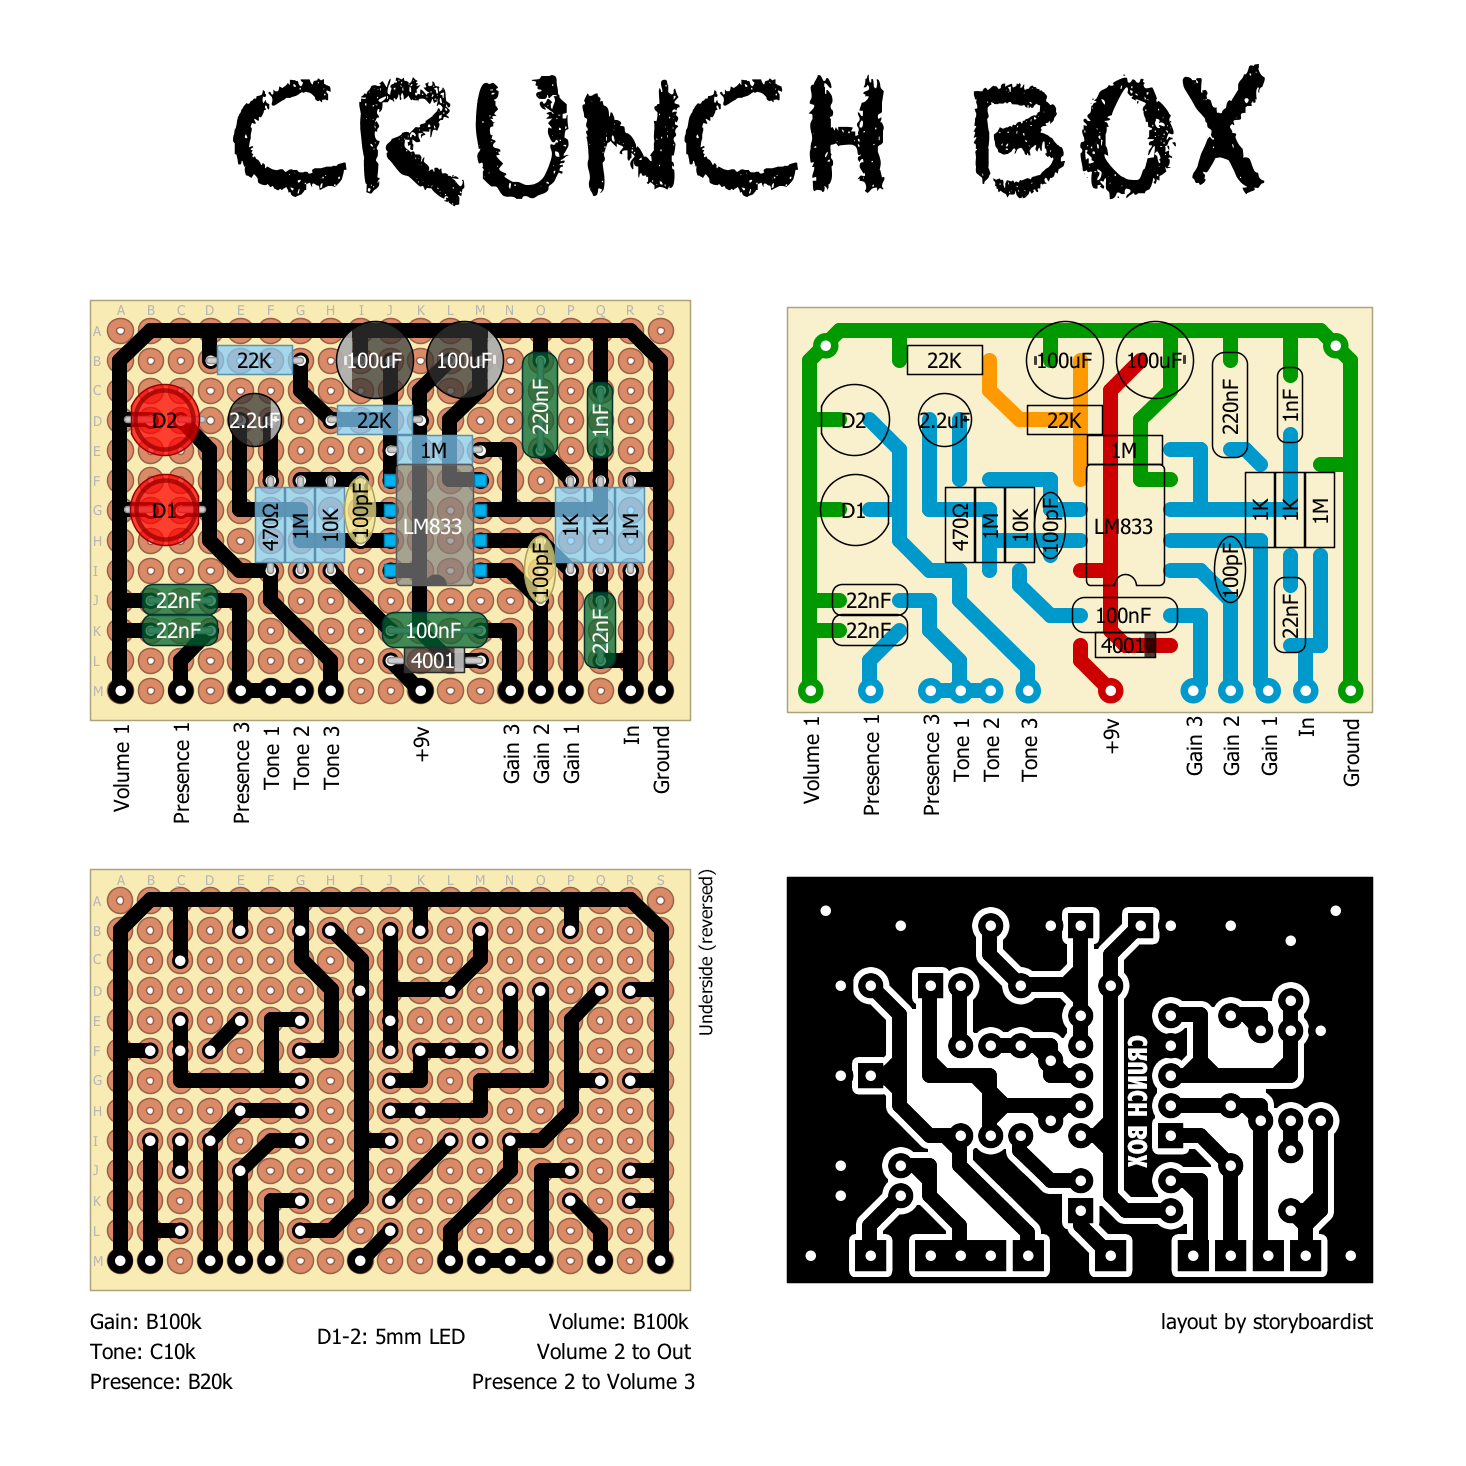 perf and pcb effects layouts mi audio crunch box an error occurred